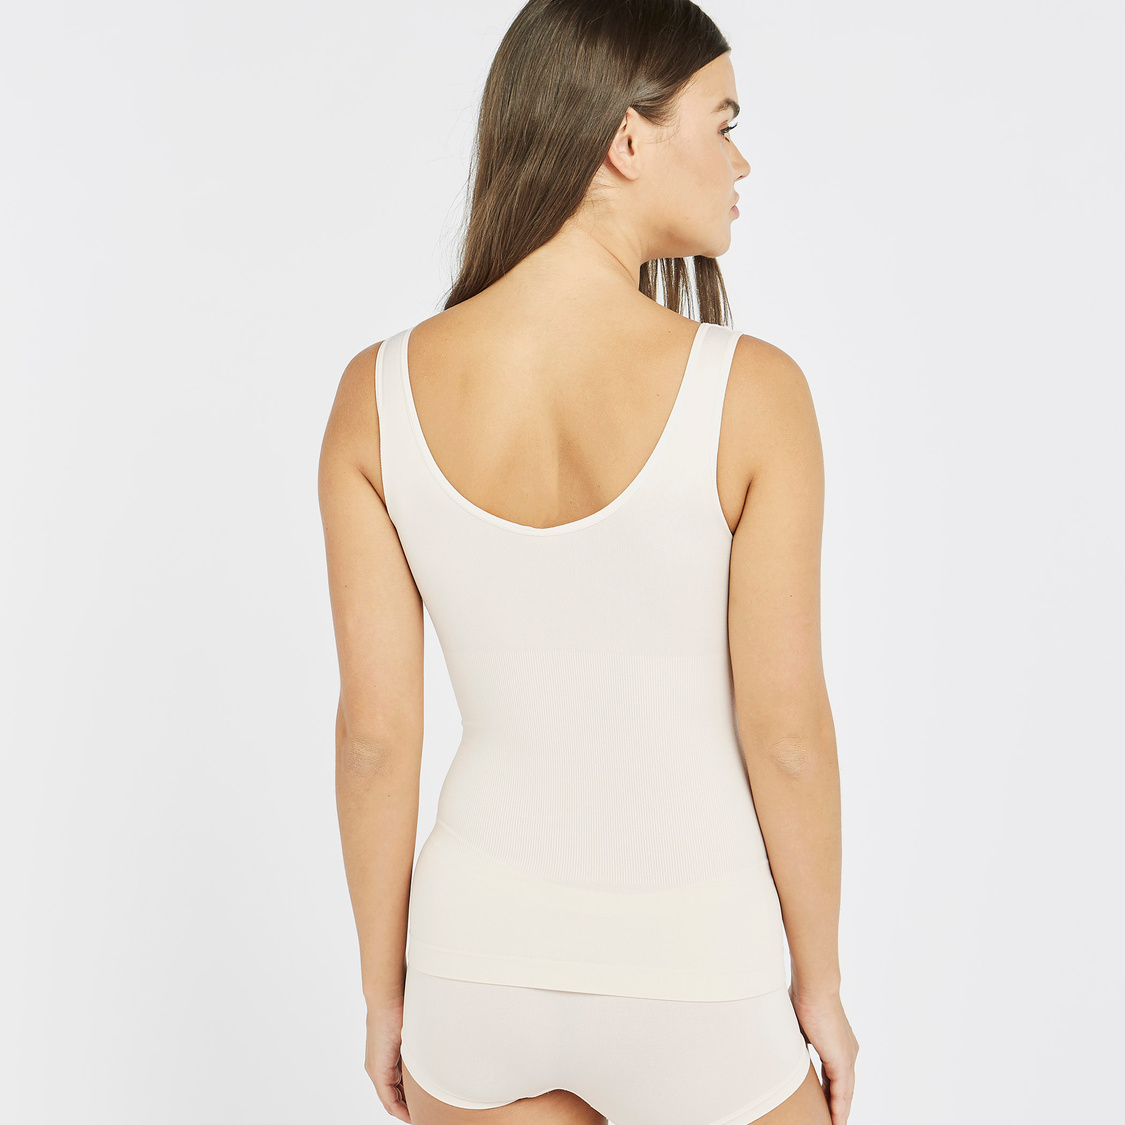 Textured Shaping Vest with Scoop Neck